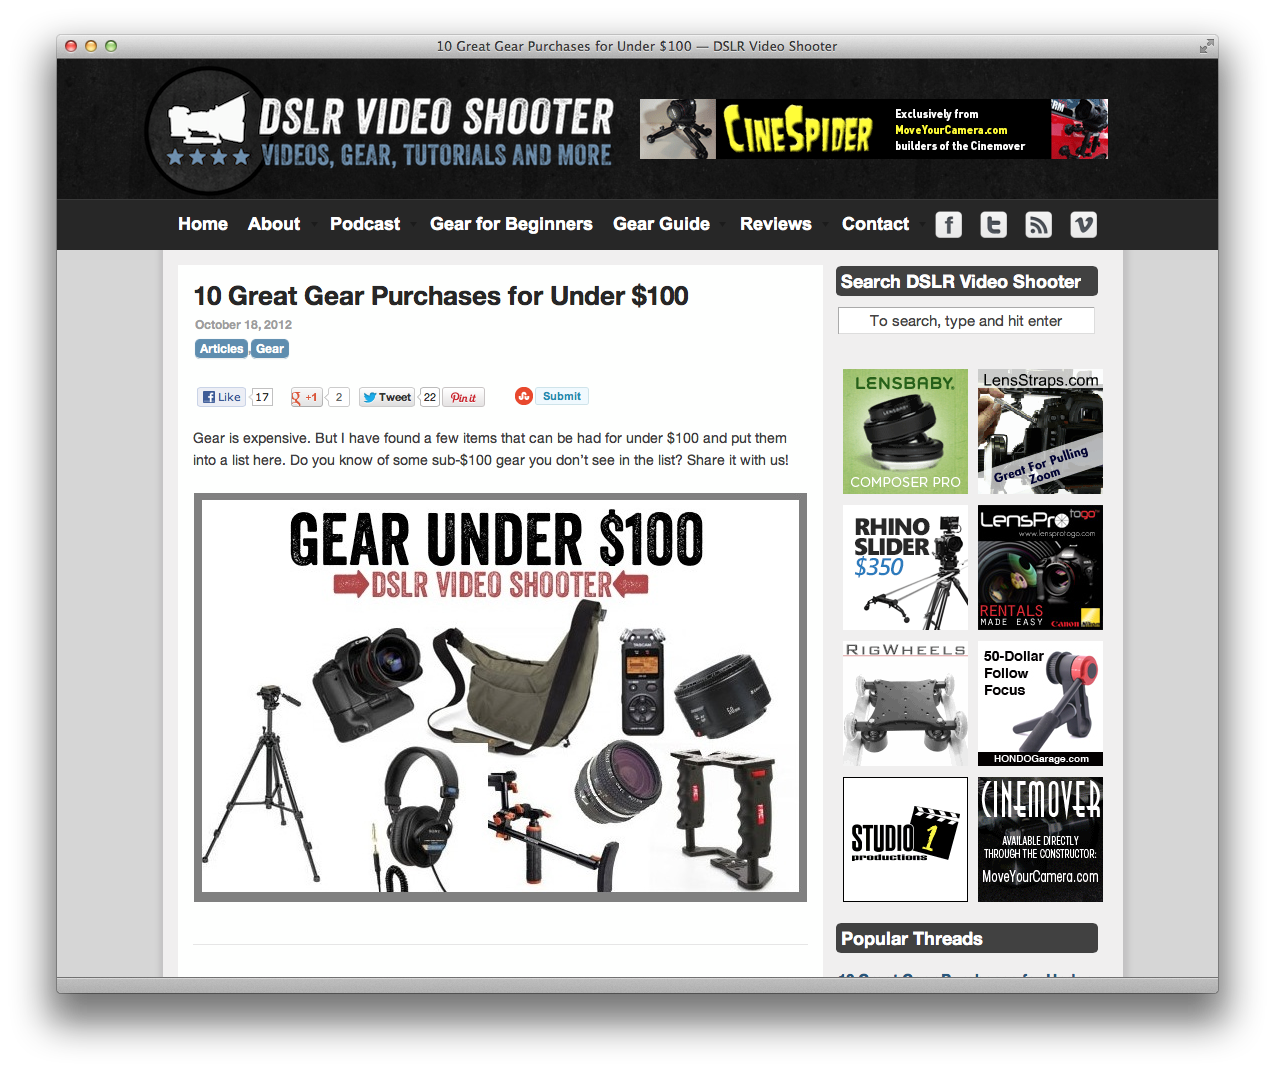 Home sweet home! DSLR video gear, tutorials, and more!